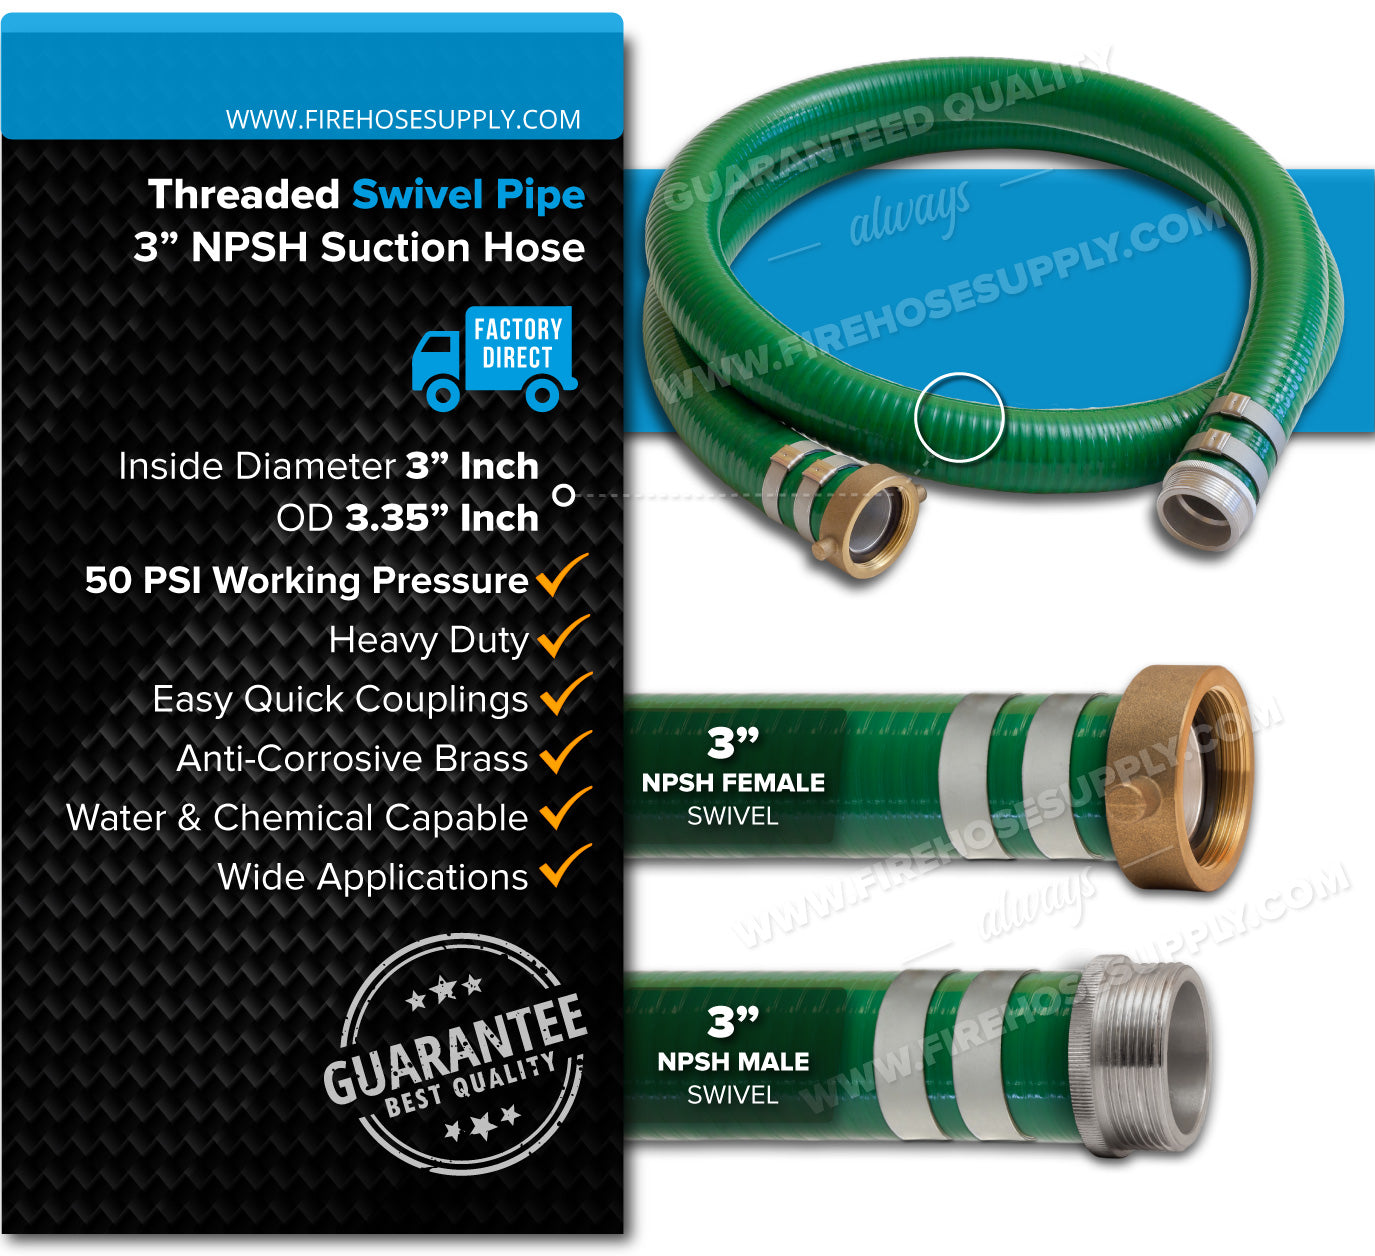 3 Inch Threaded Female x Male Green Suction Hose Overview